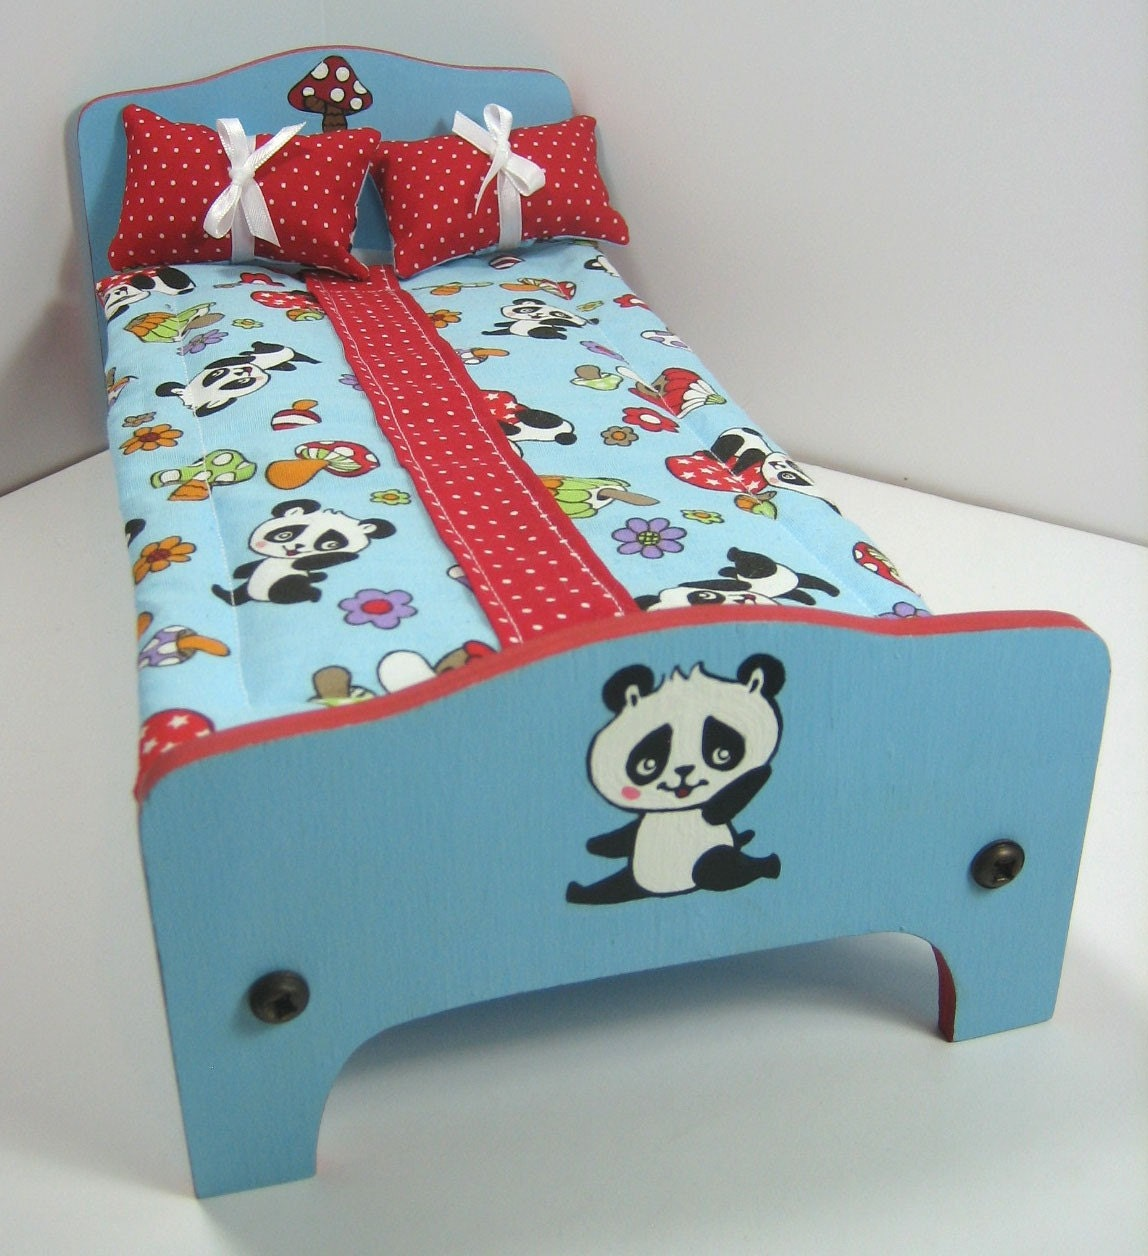 Bedroom Lighting Walmart Red And Blue Bedroom Teenage Bedroom Accessories Very Tiny Bedroom Design Ideas: Light Blue And Red Panda Twin Bed With Bedding By